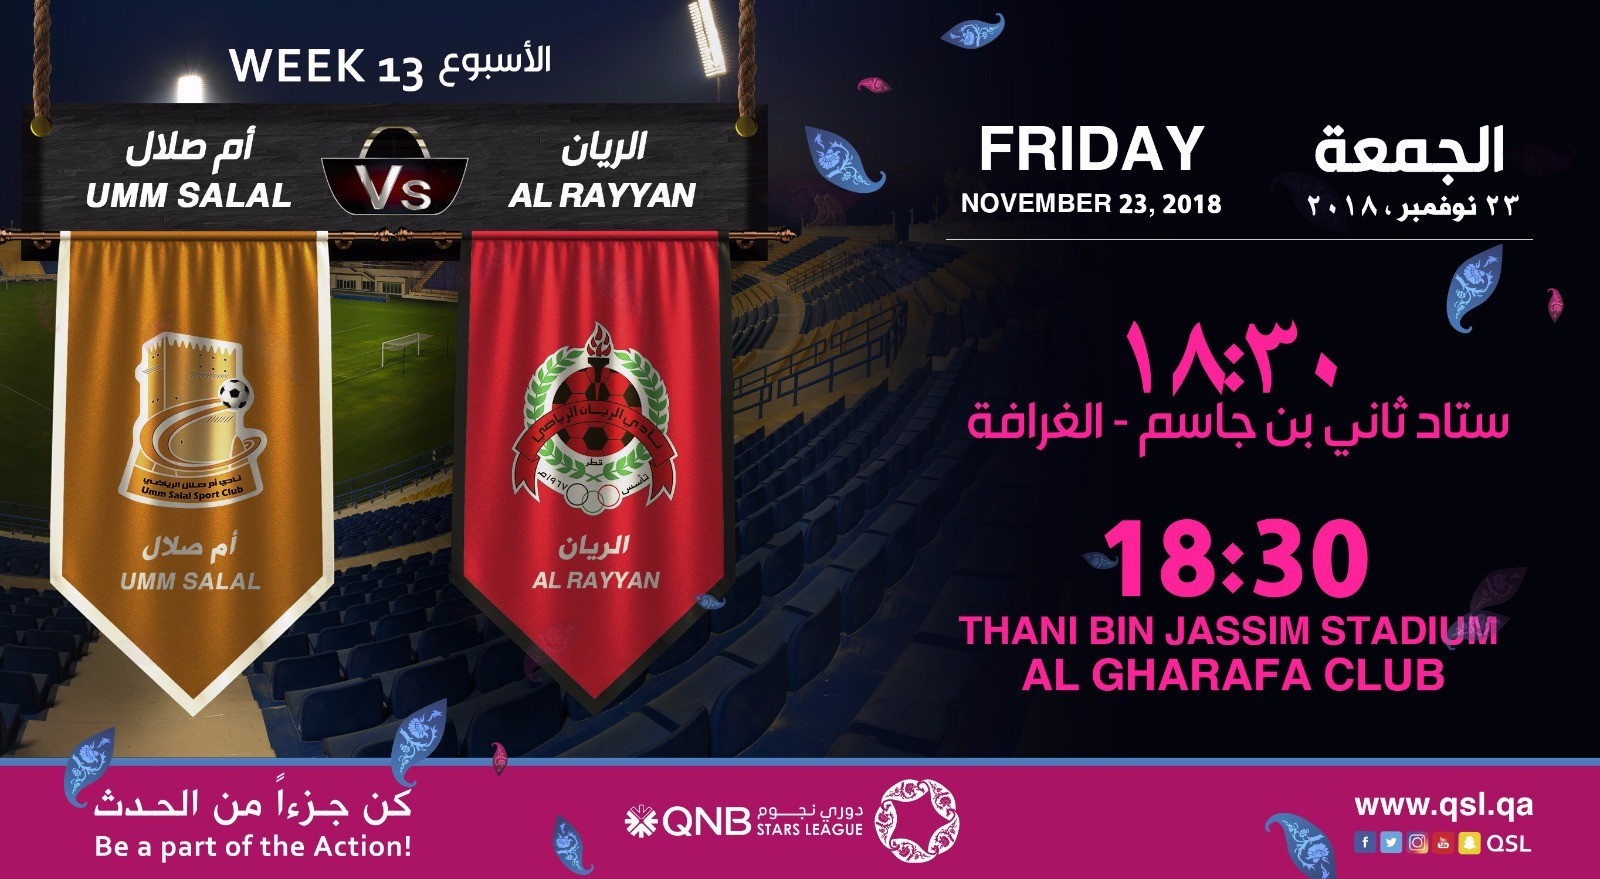 QNB Stars League Week 13 — Umm Salal vs Al Rayyan